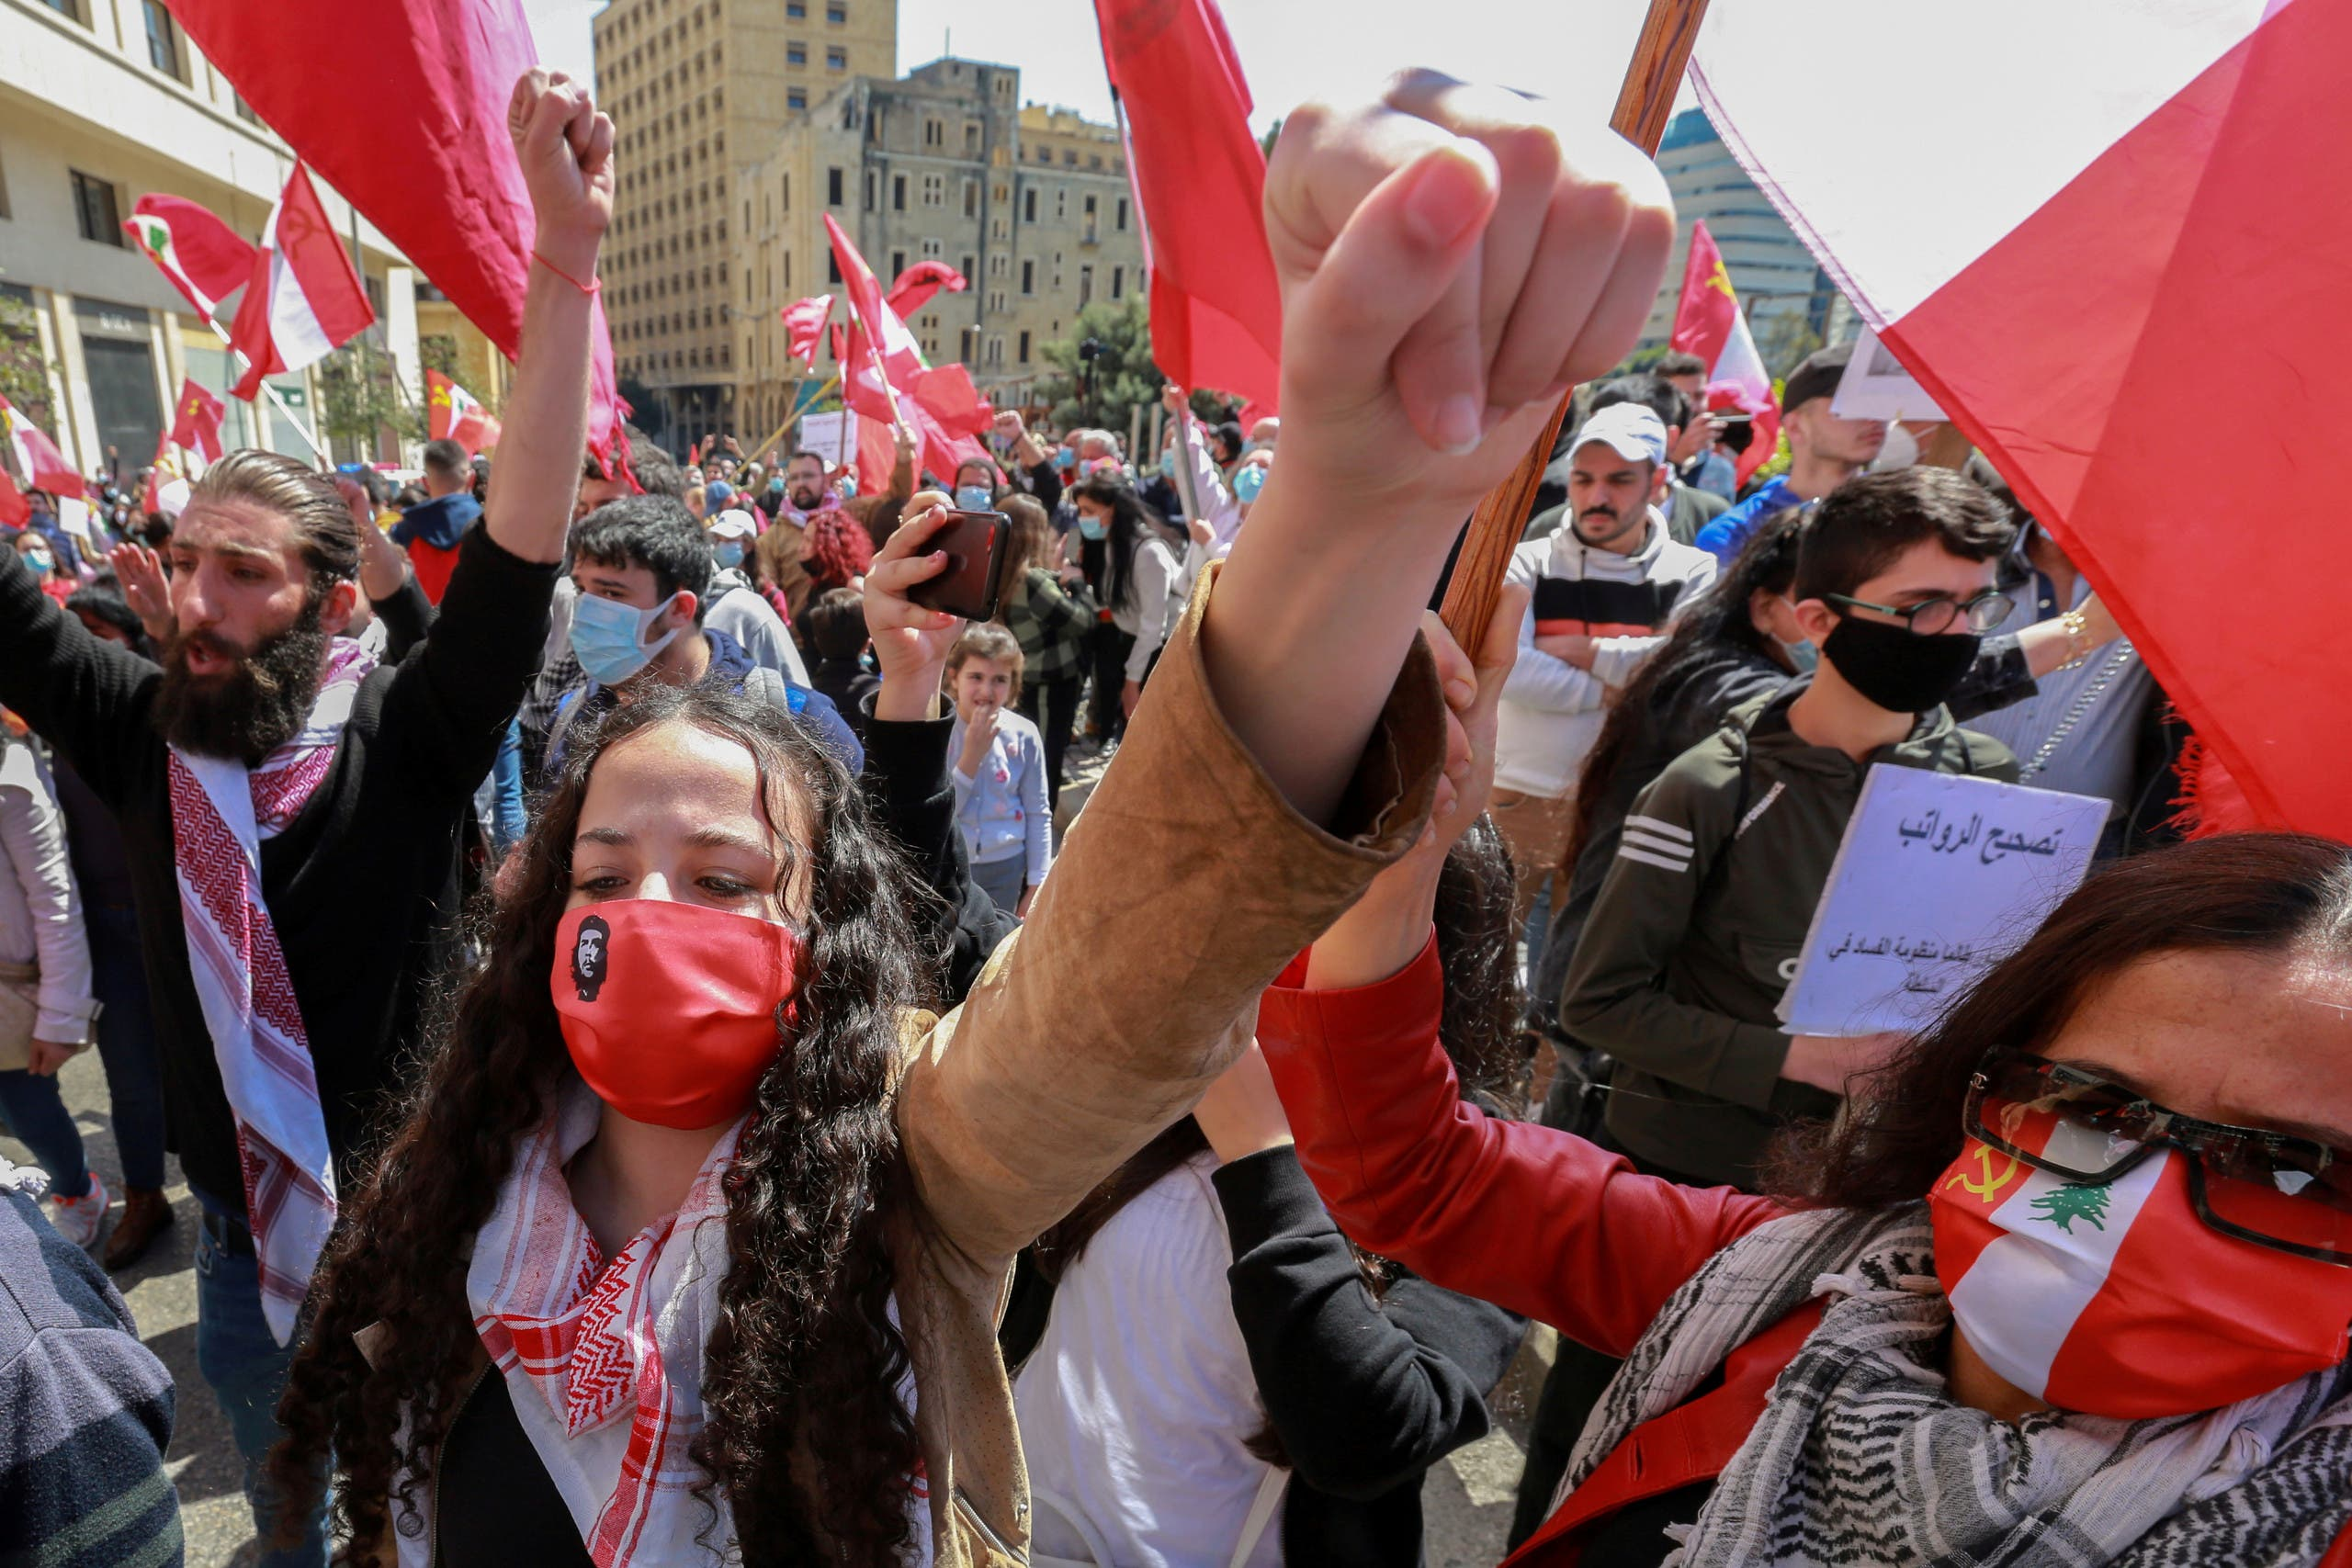 Demonstrators take part in a protest against mounting economic hardships in Beirut, Lebanon March 28, 2021. (File photo: Reuters)